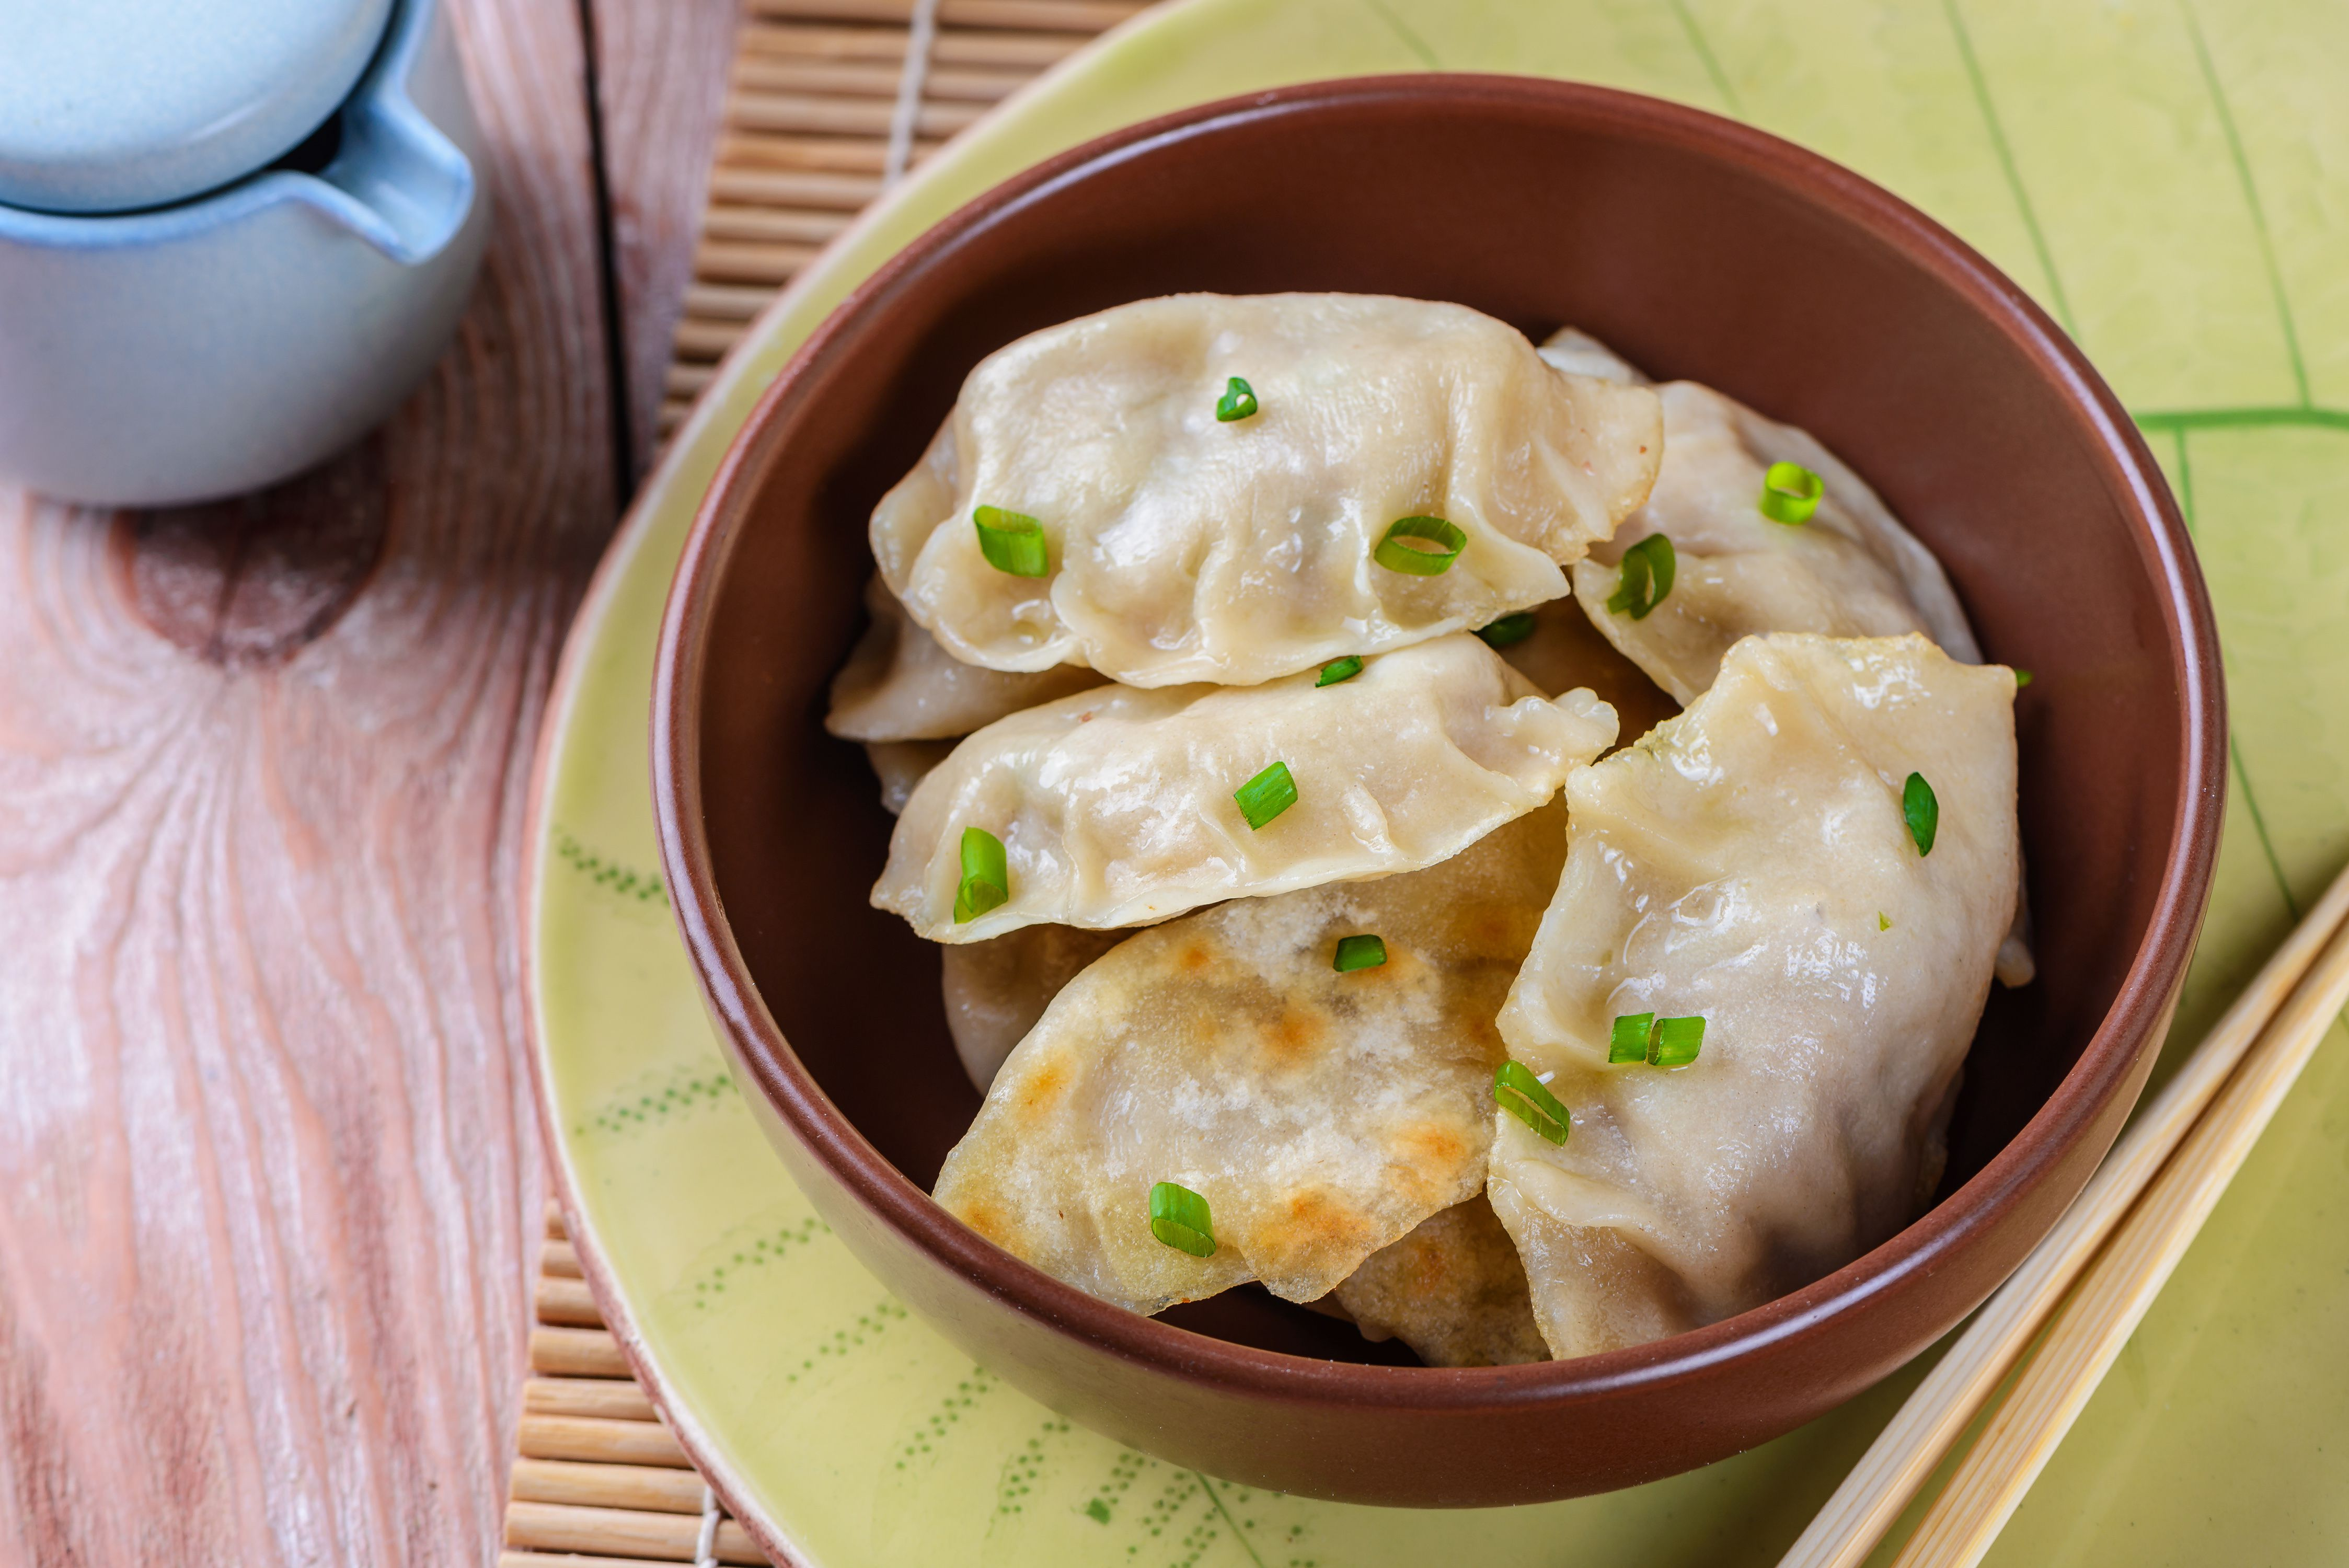 A Step-by-Step Guide to Make Delicious Chinese-Style Dumplings